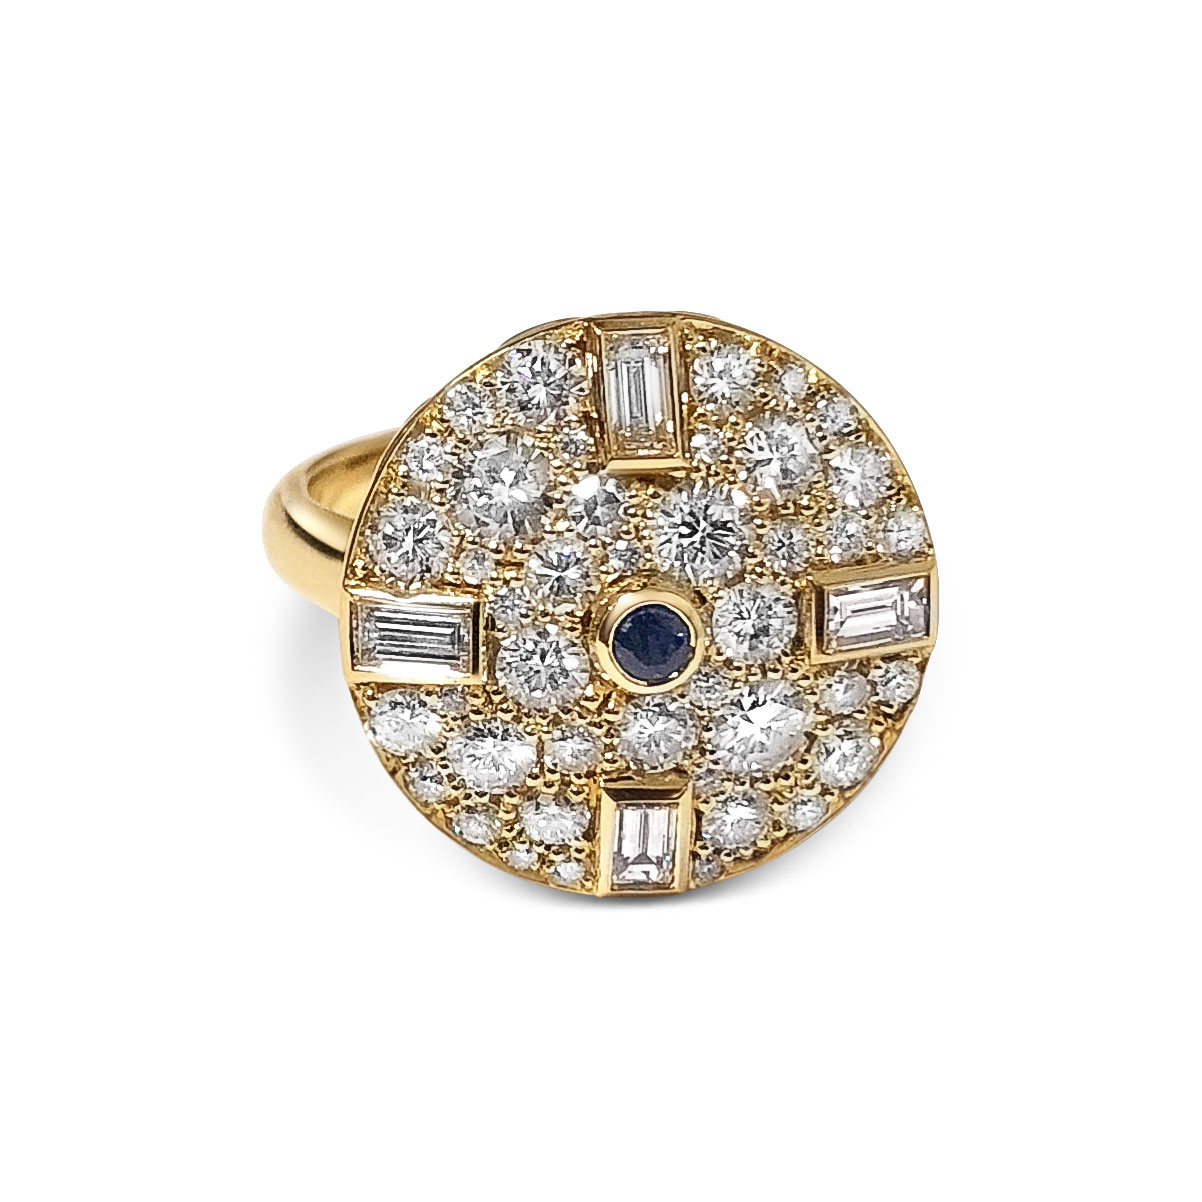 Bespoke sapphire, baguette-cut diamond and pavé-set diamond circular ring, mounted in 18ct yellow gold. top